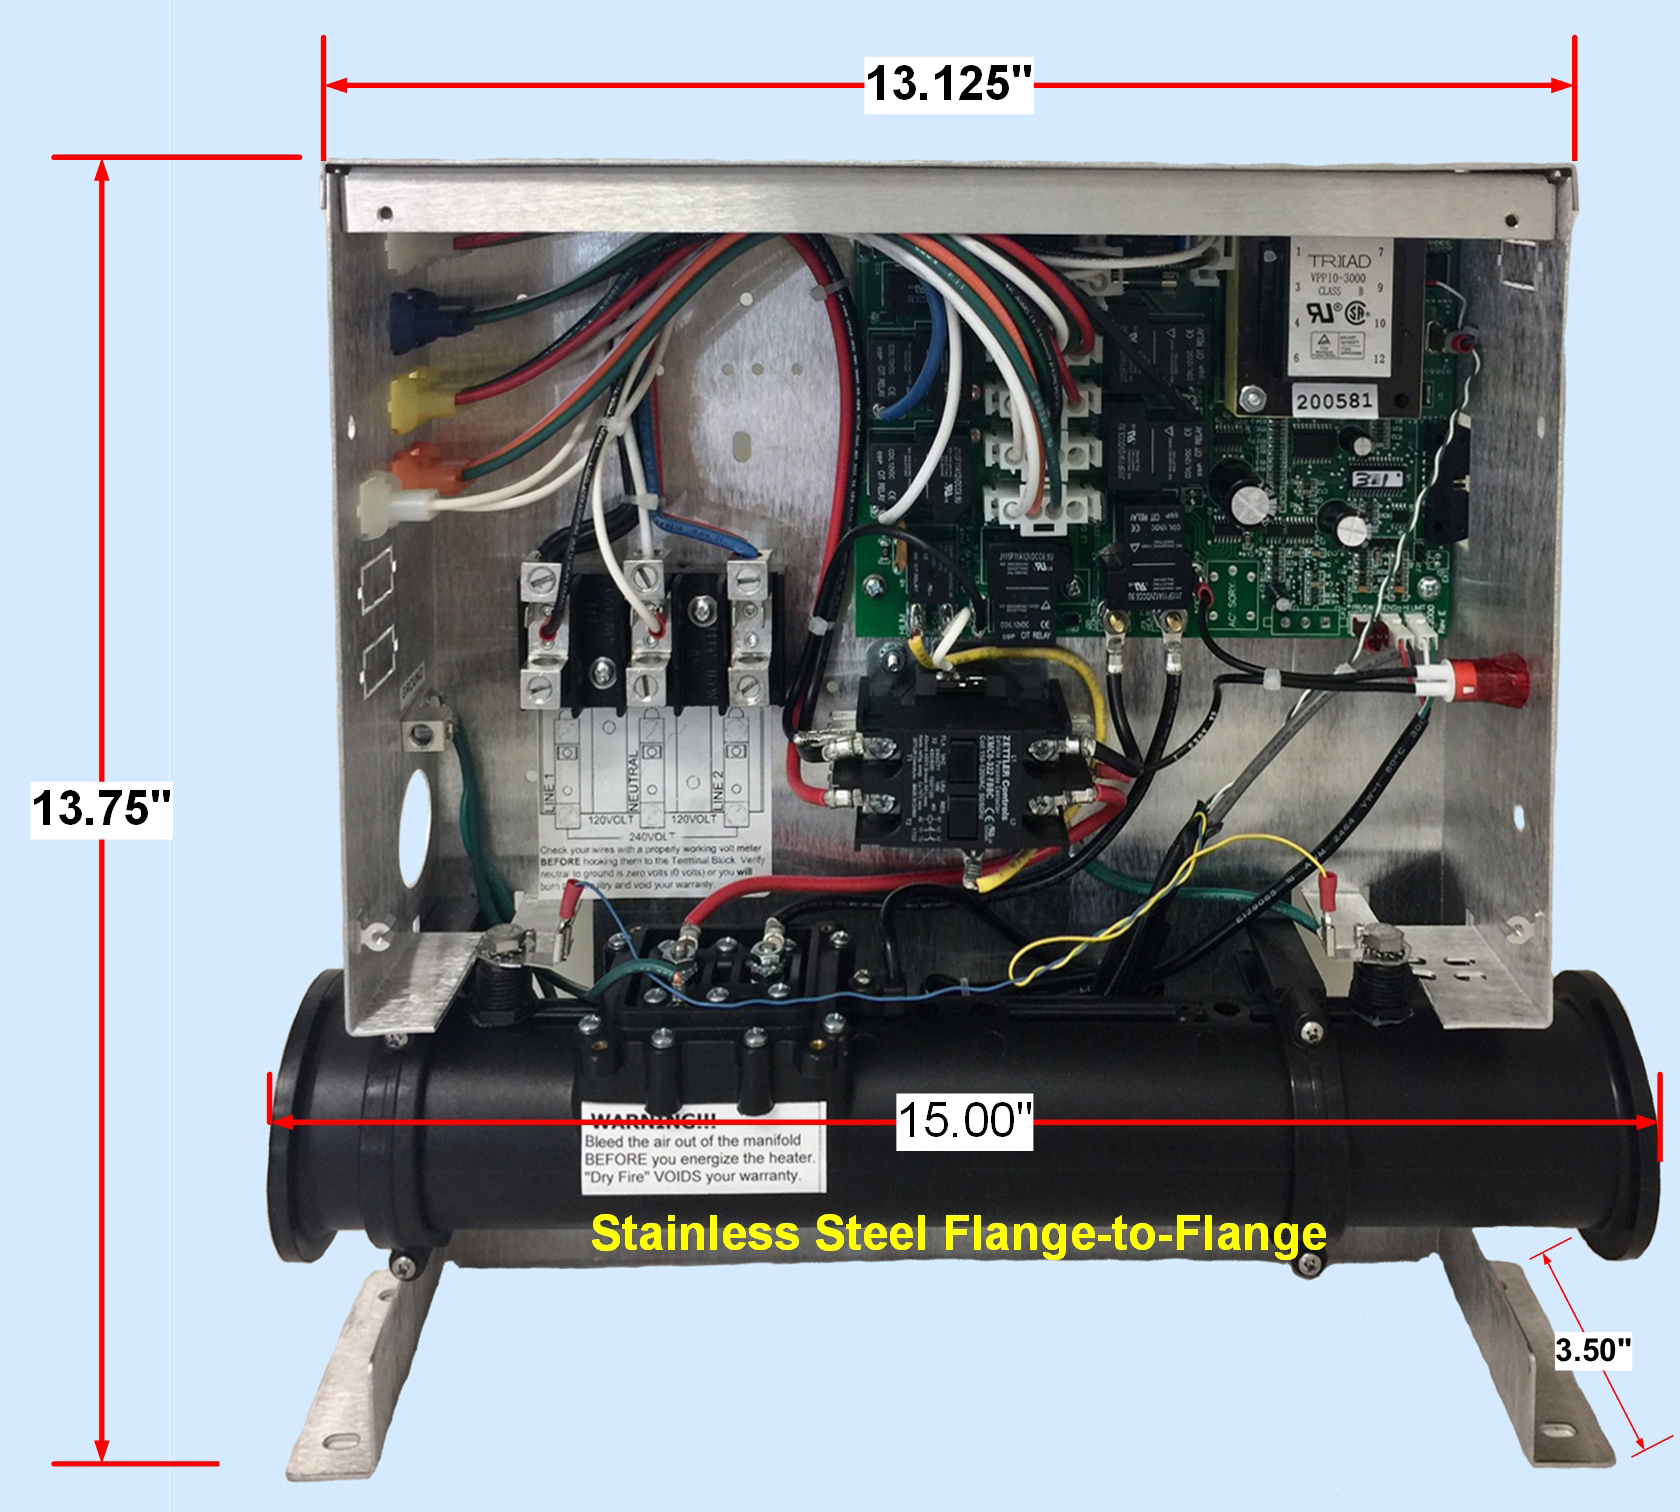 Powermaster_Dimensions replacement classact spas heater for $19 95 free freight mfg jacuzzi wiring diagram at edmiracle.co